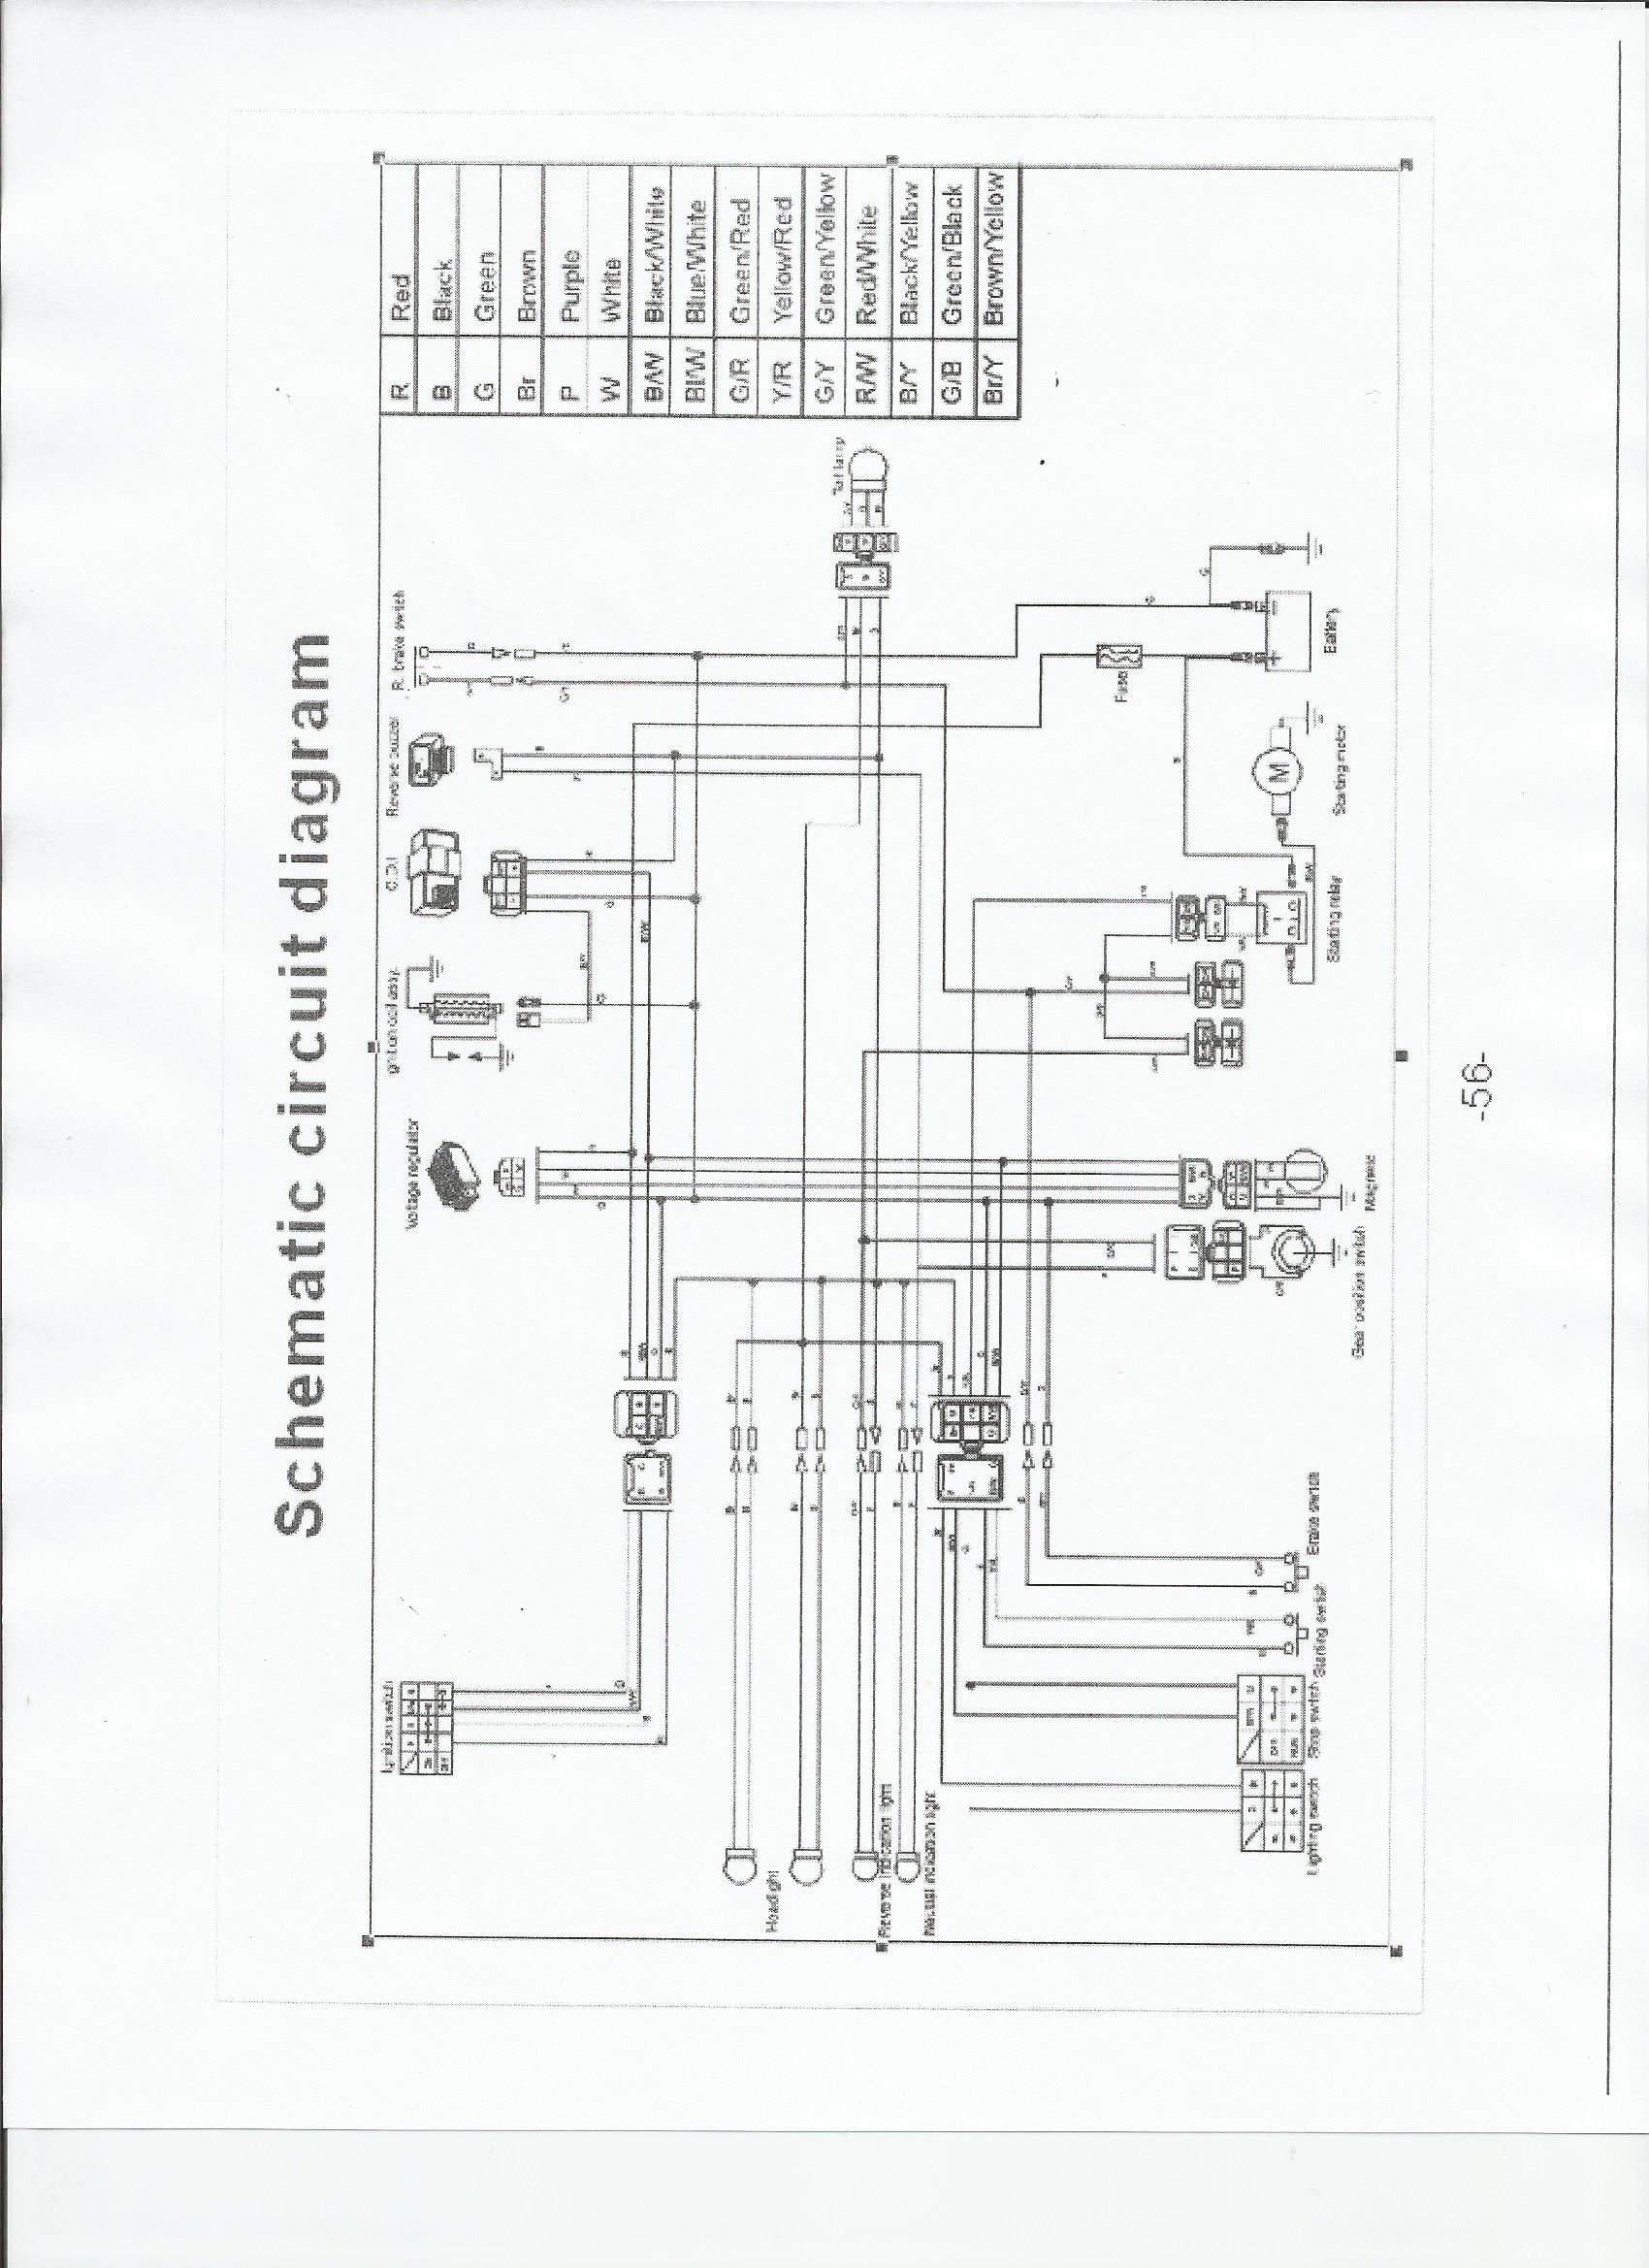 tao tao wiring schematic tao tao ata150 wiring schematic,tao \u2022 indy500 co  at honlapkeszites.co